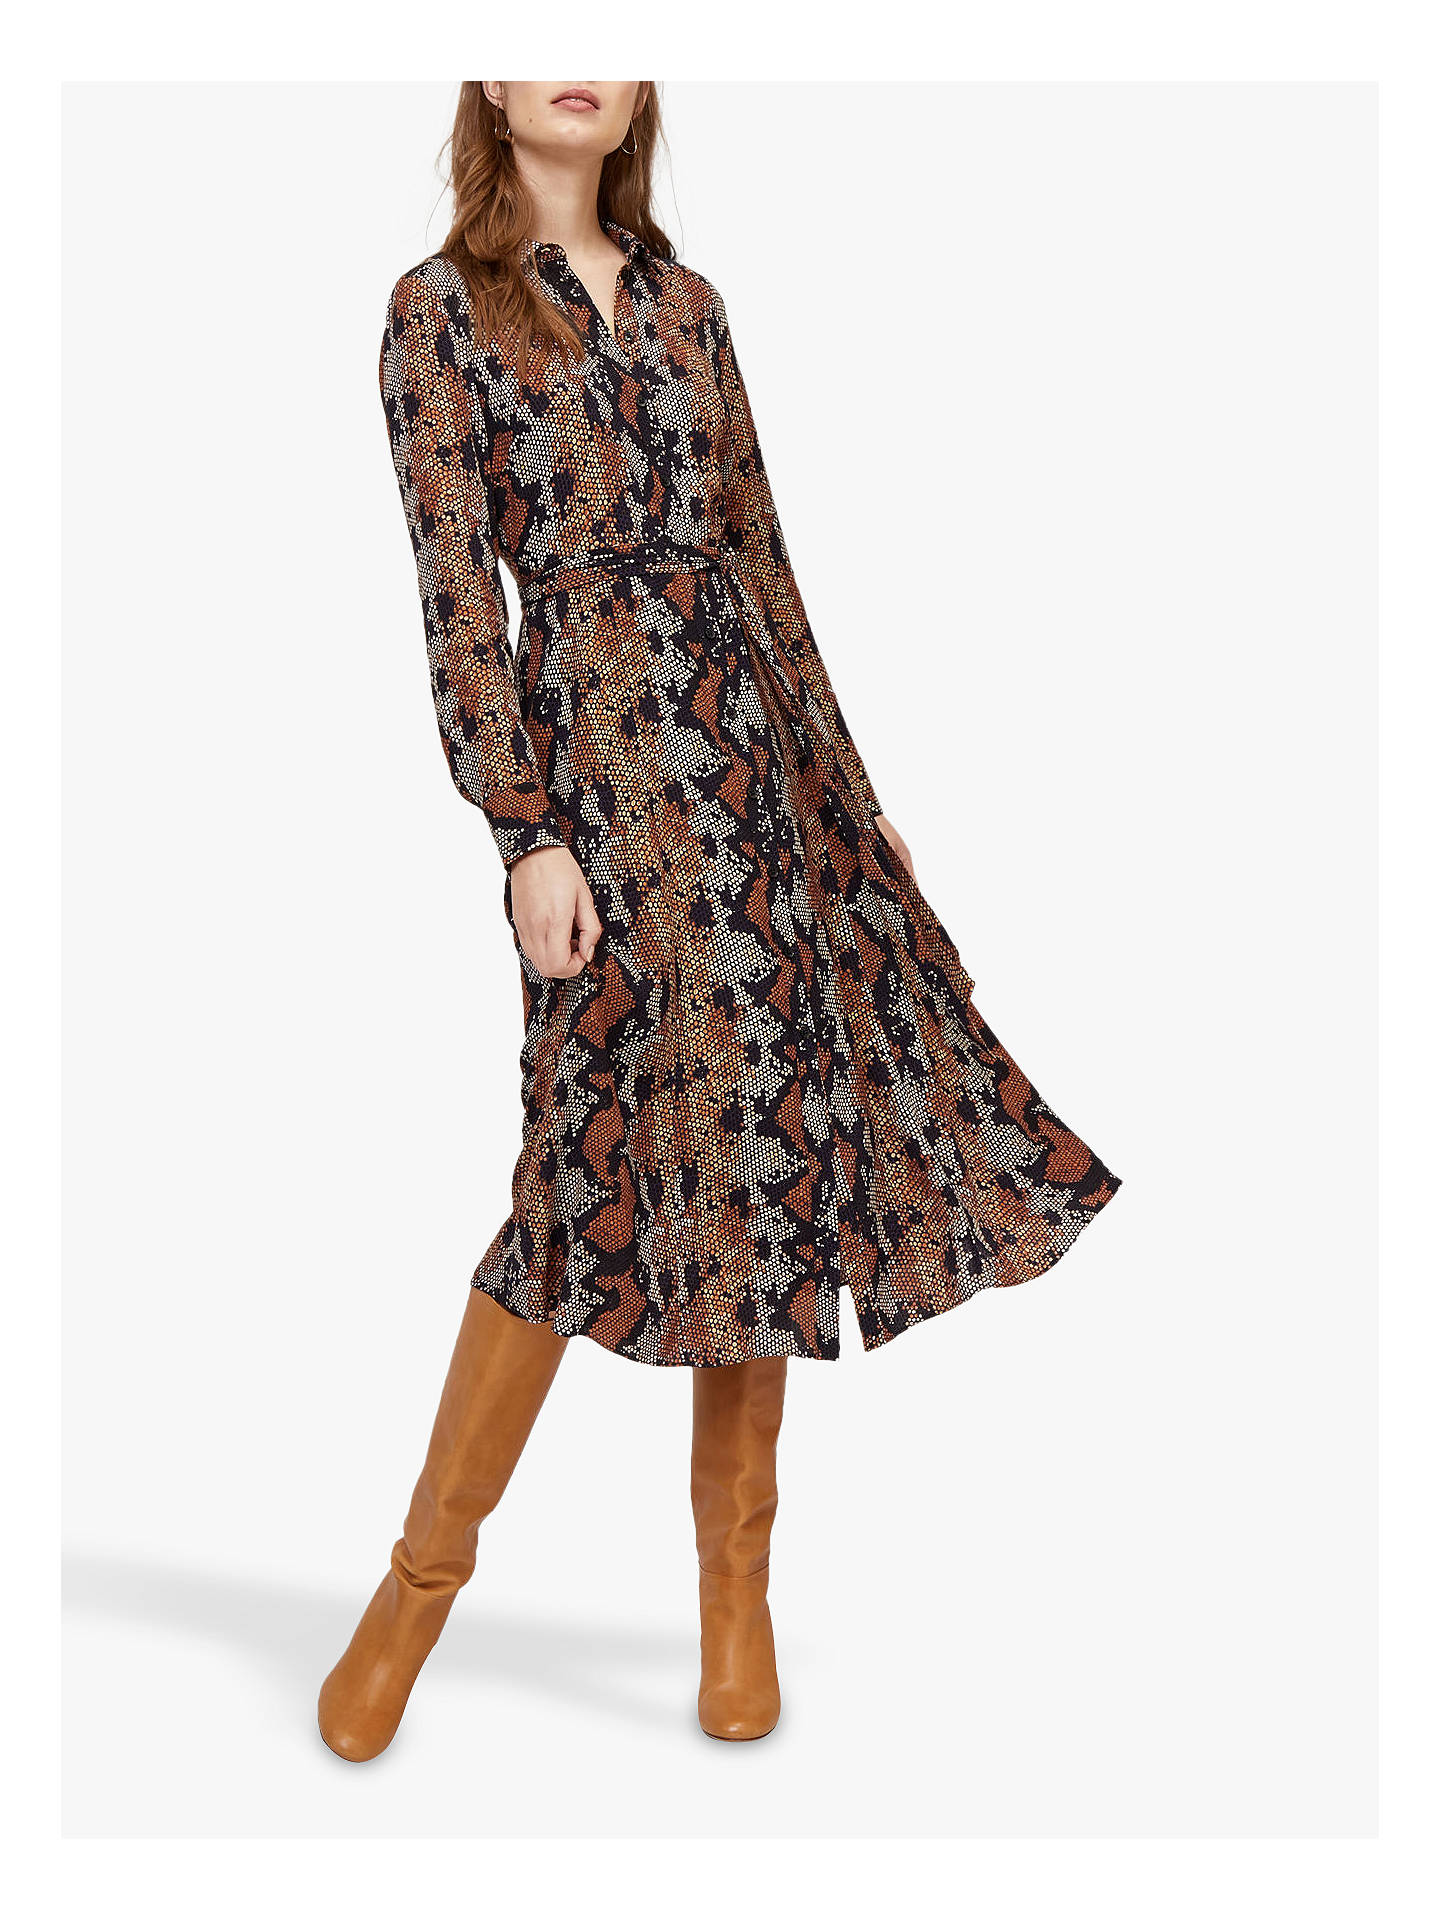 Warehouse Snake Print Dress - £52 at John LewisThis snake print dress is slightly more colourful, but still relatively low-key. (Side note: Warehouse are really nailing their collections recently.)